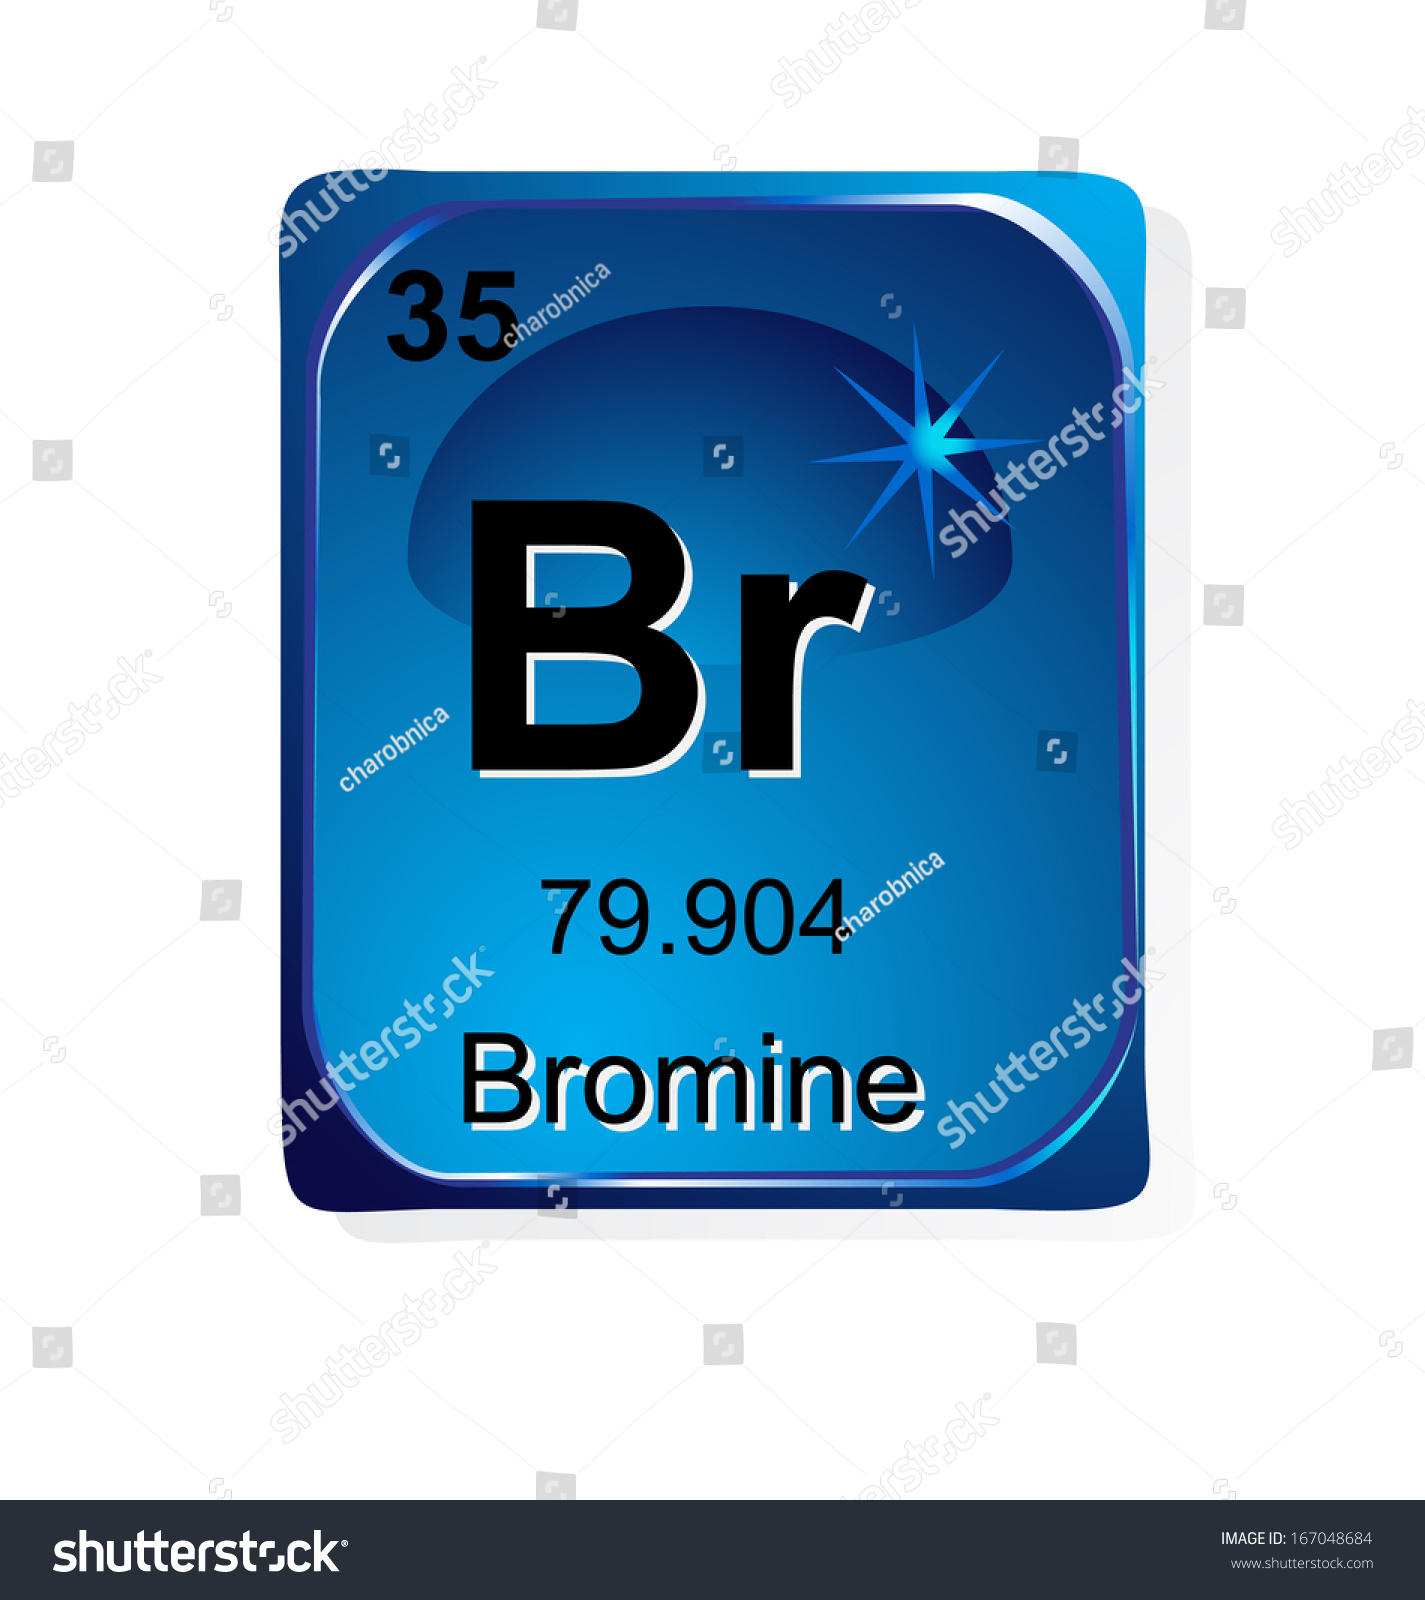 bromine chemical element with atomic number symbol and weight - Bromine Periodic Table Atomic Number